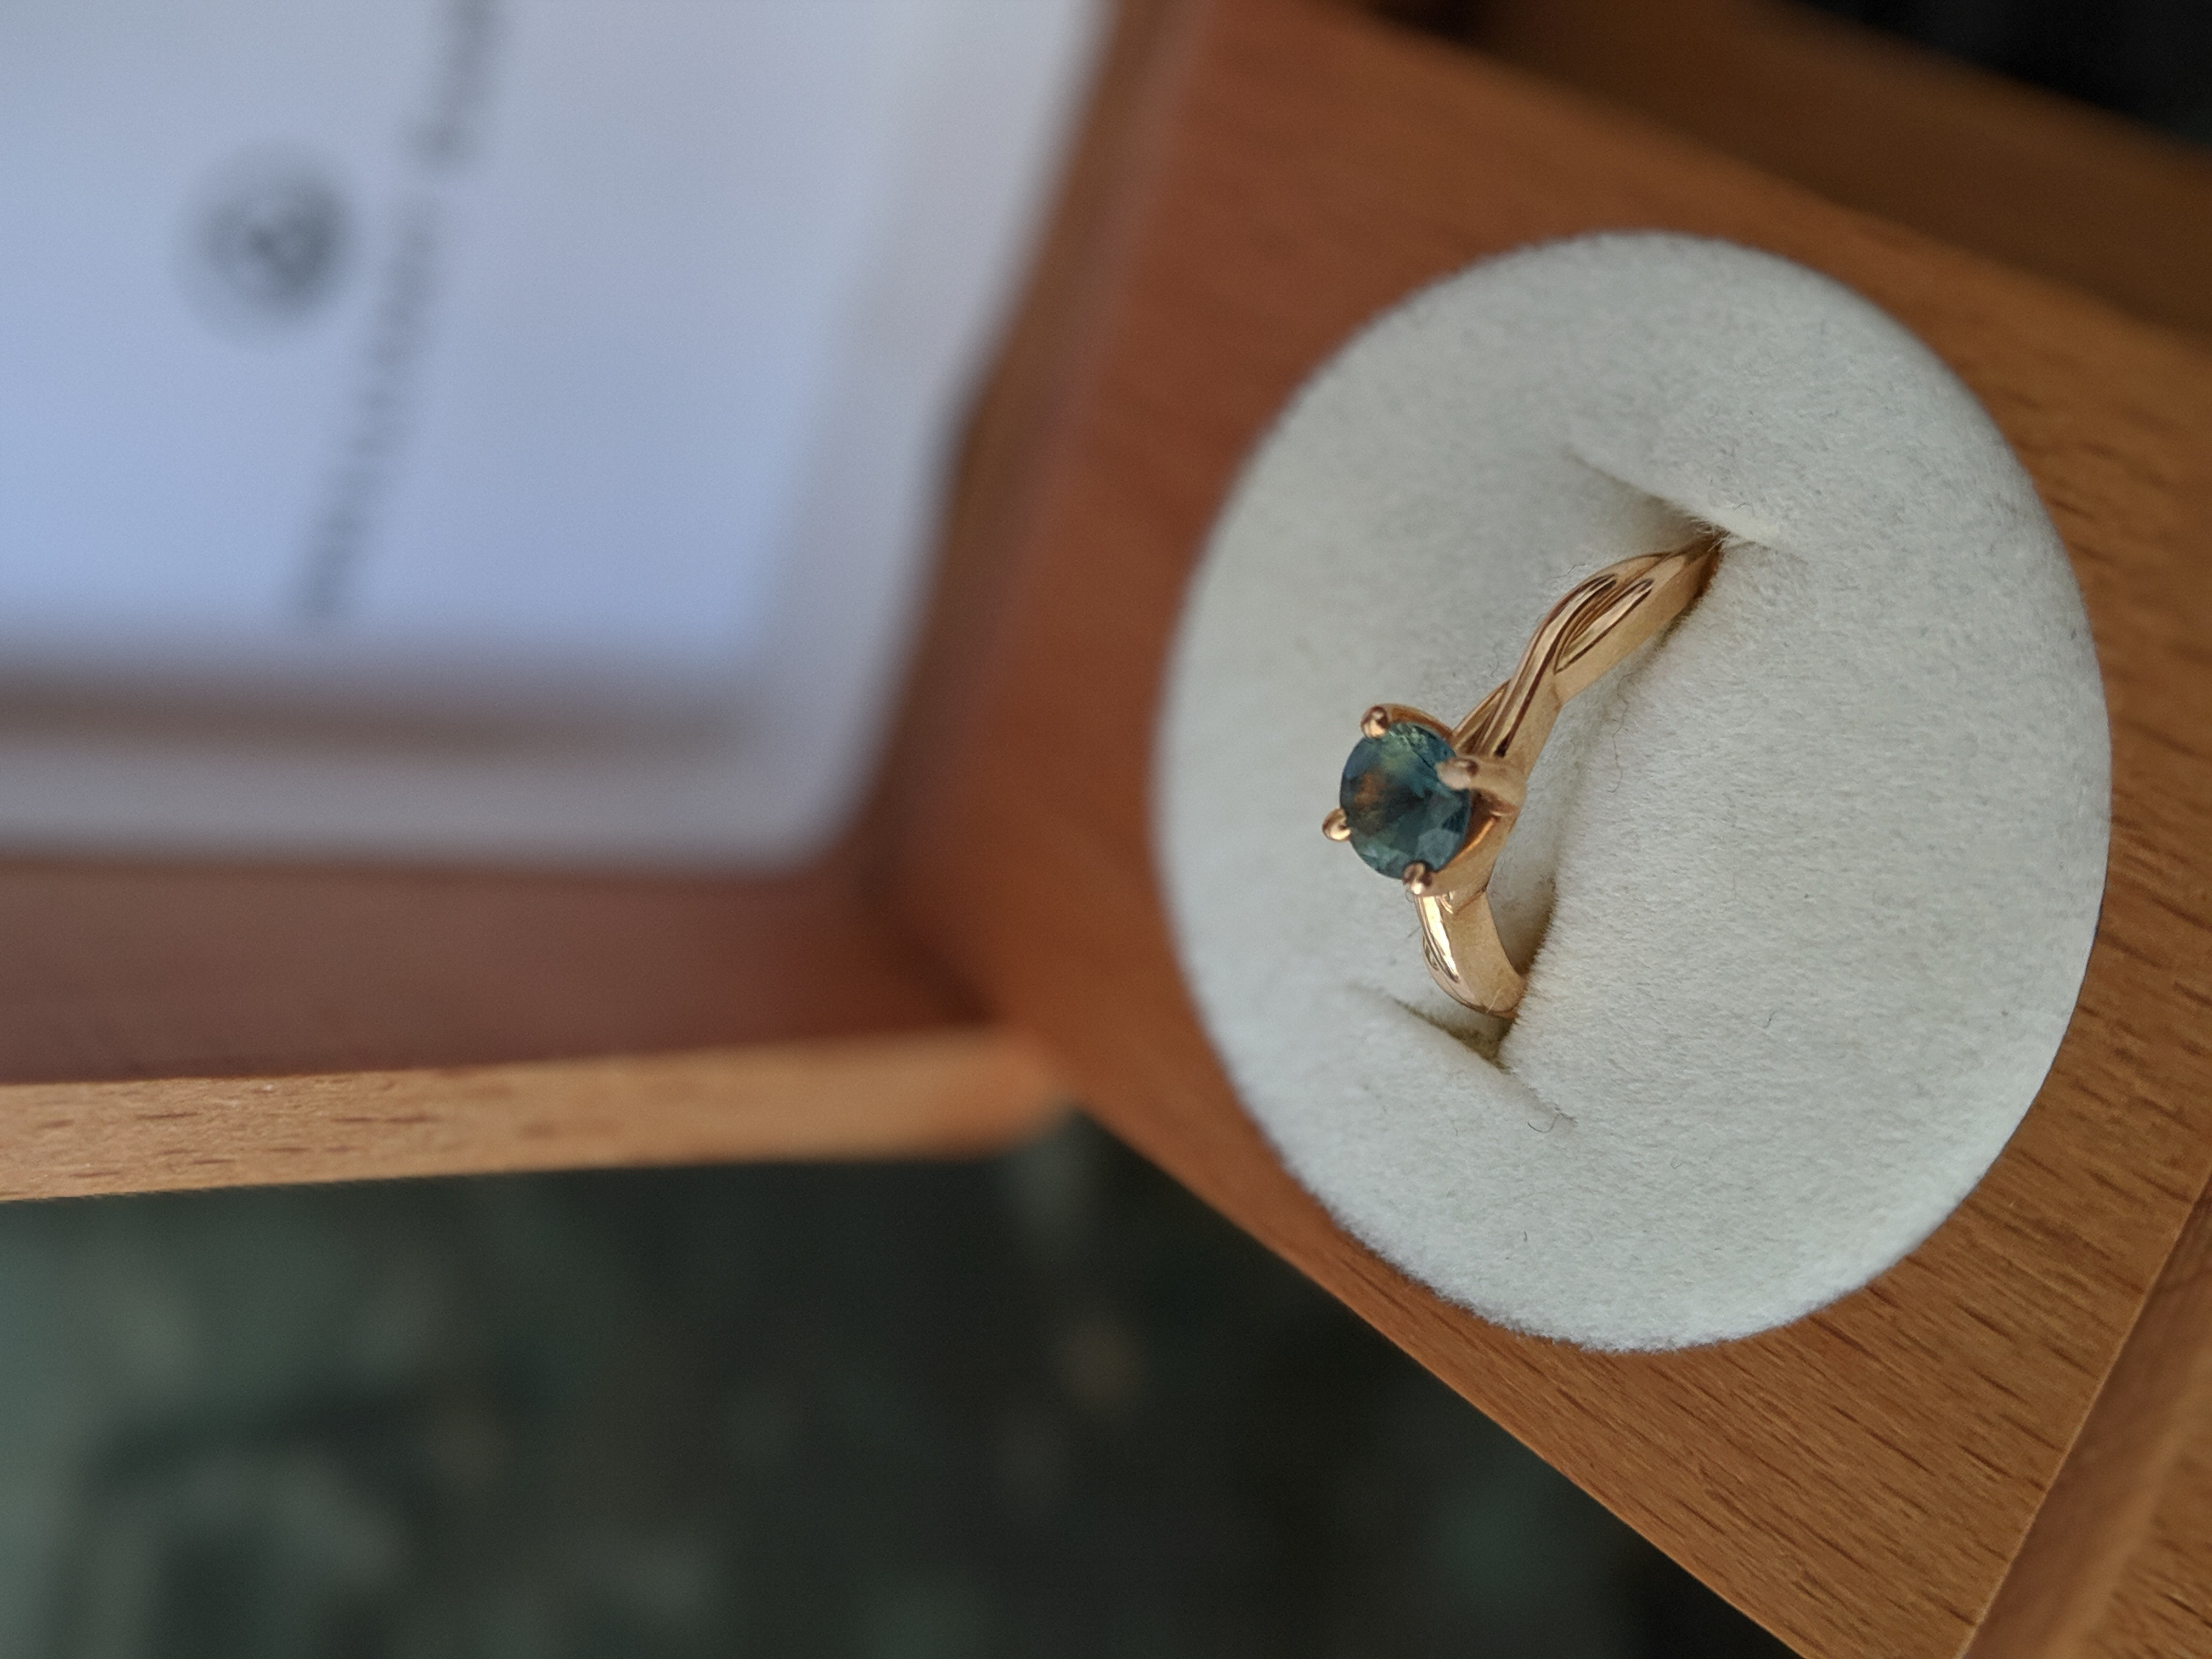 Teal Sapphire Engagement Ring From Brilliant Earth